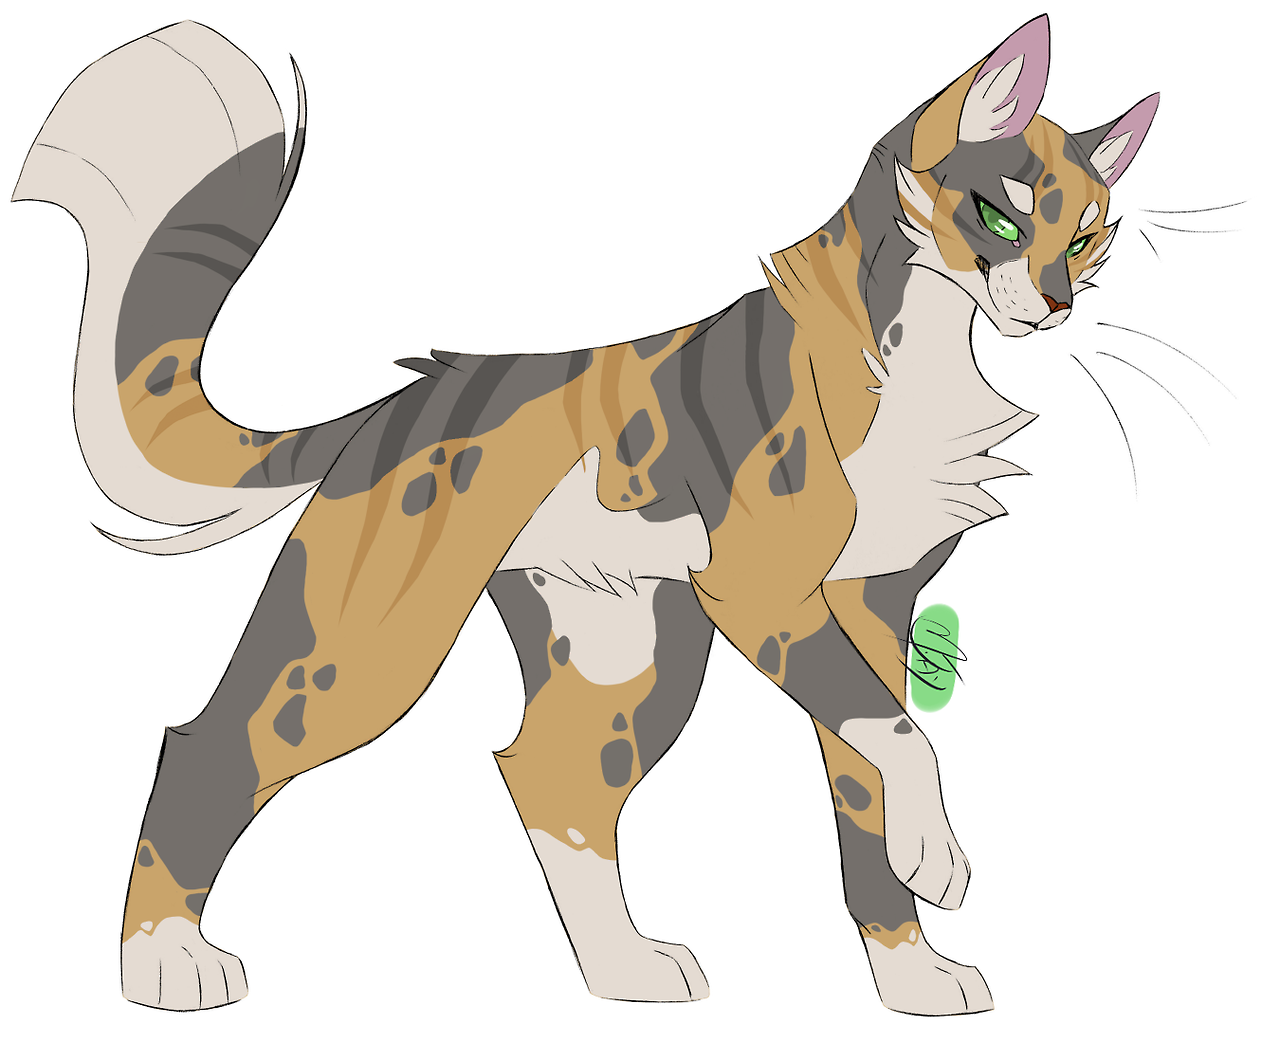 Warrior Cats Dessin Chat Chats Et Chatons Animaux